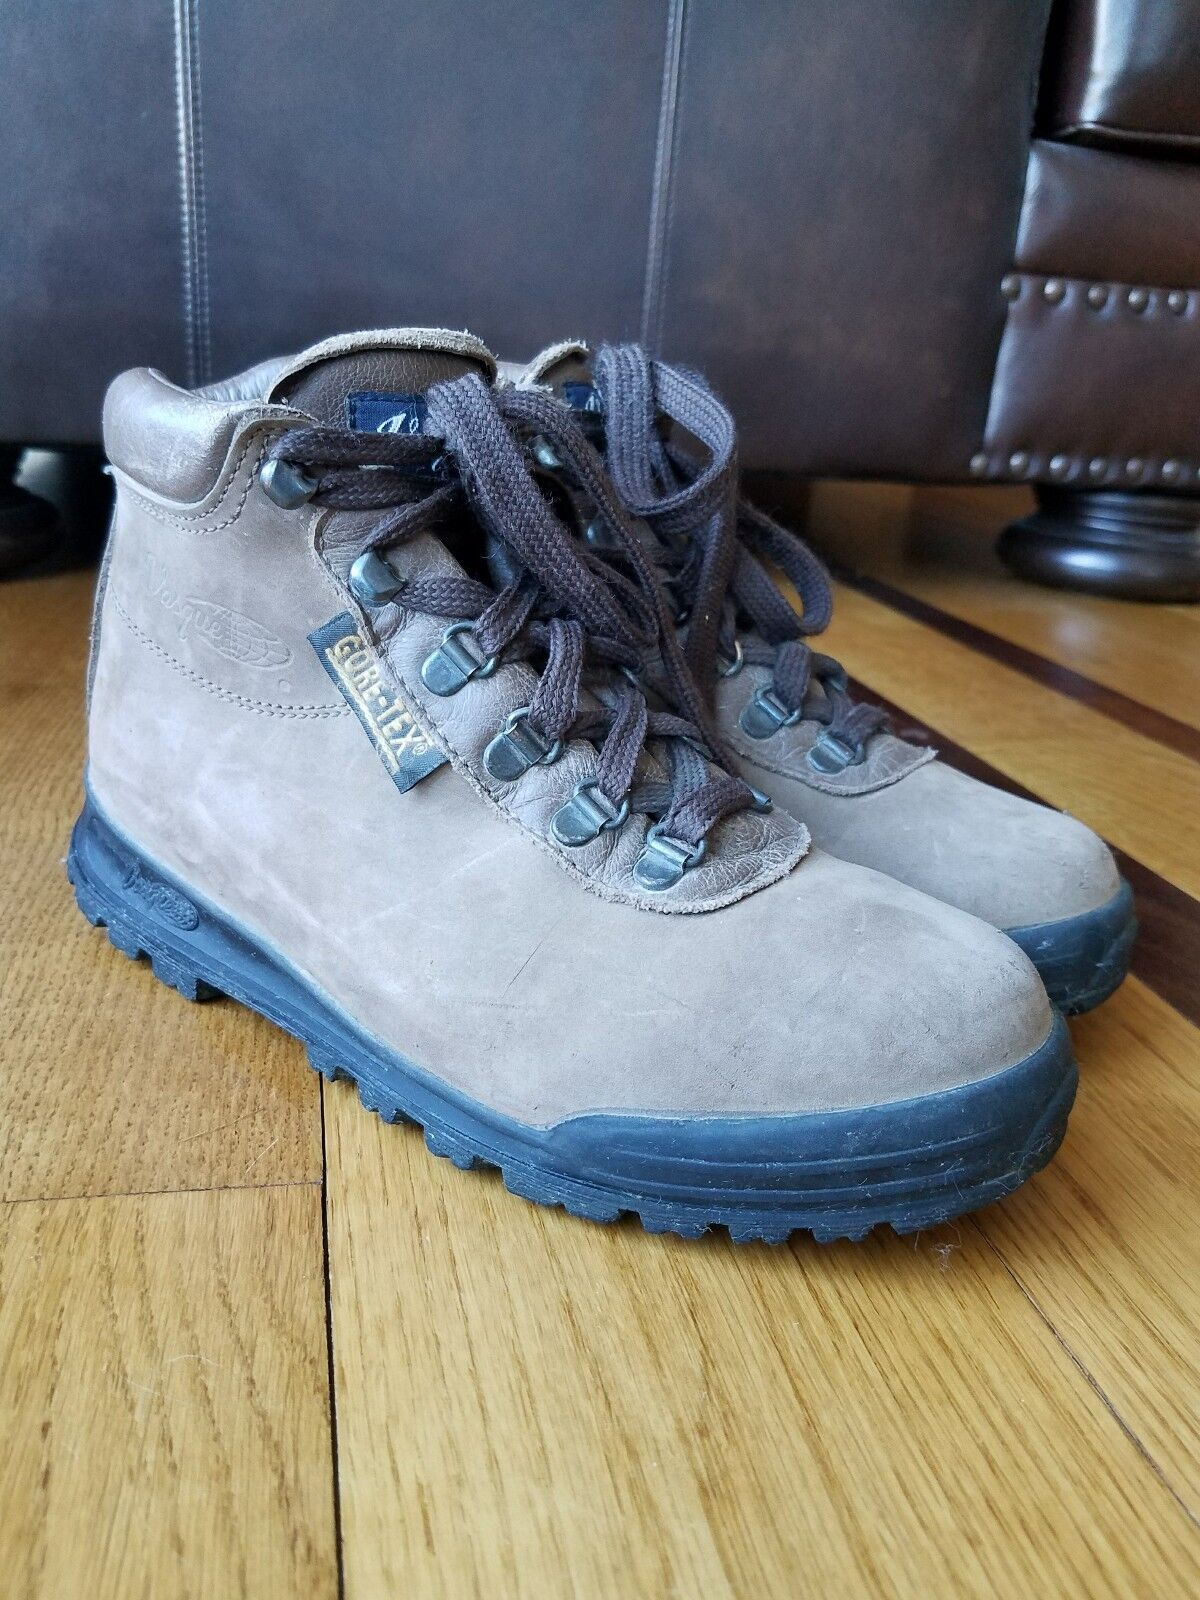 Vasque Woman's Skywalk Brown Leather Gore-Tex  Hiking Ankle Boot 7.5M 7931